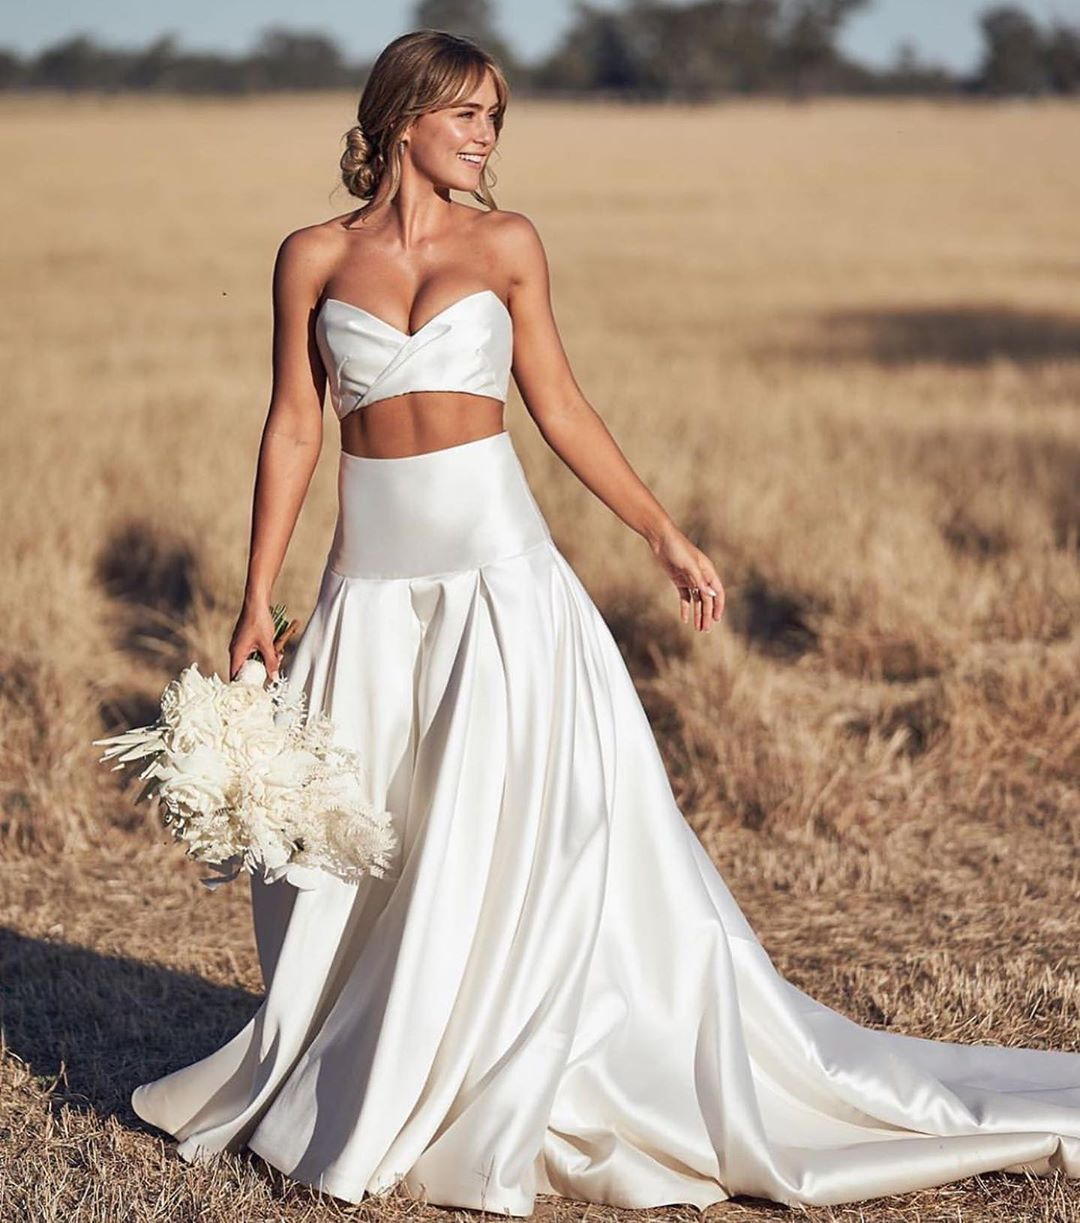 The Bridal Journey On Instagram We Were Speechless When We Saw You Step Out Of The Car Ab Two Piece Wedding Dress Brides Wedding Dress Modern Wedding Dress [ 1223 x 1080 Pixel ]